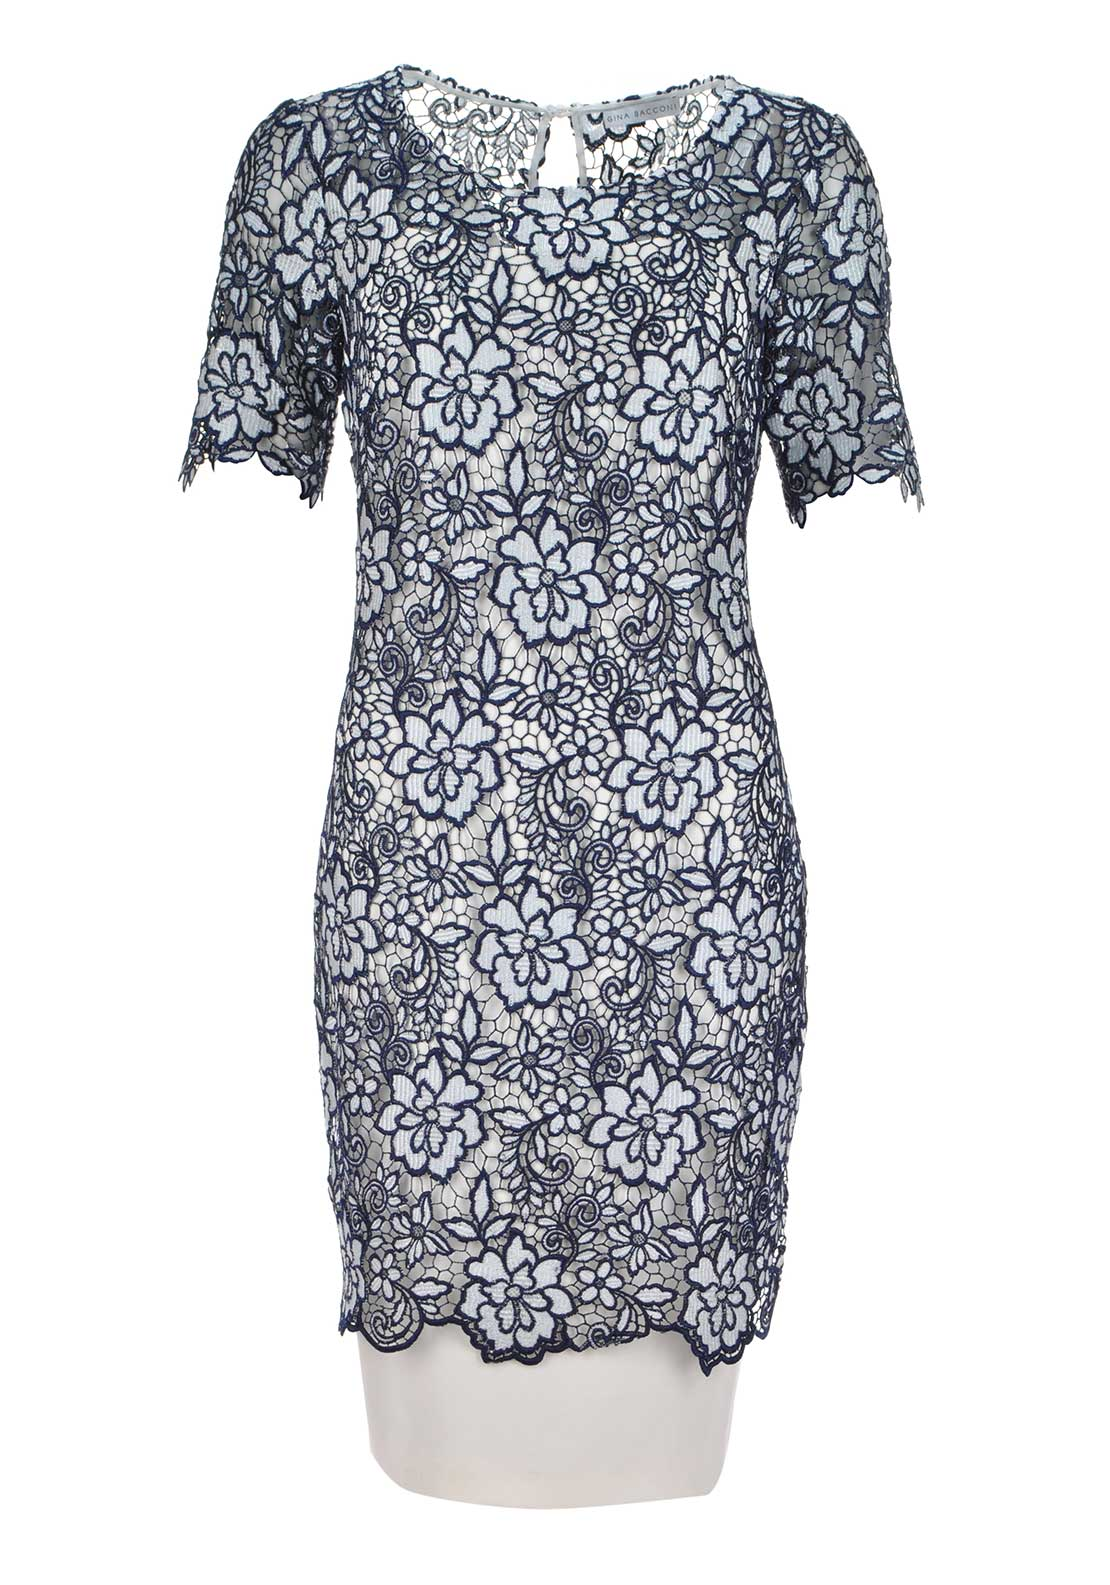 Gina Bacconi Guipure Lace Overlay Short Sleeve Pencil Dress, Navy and Cream